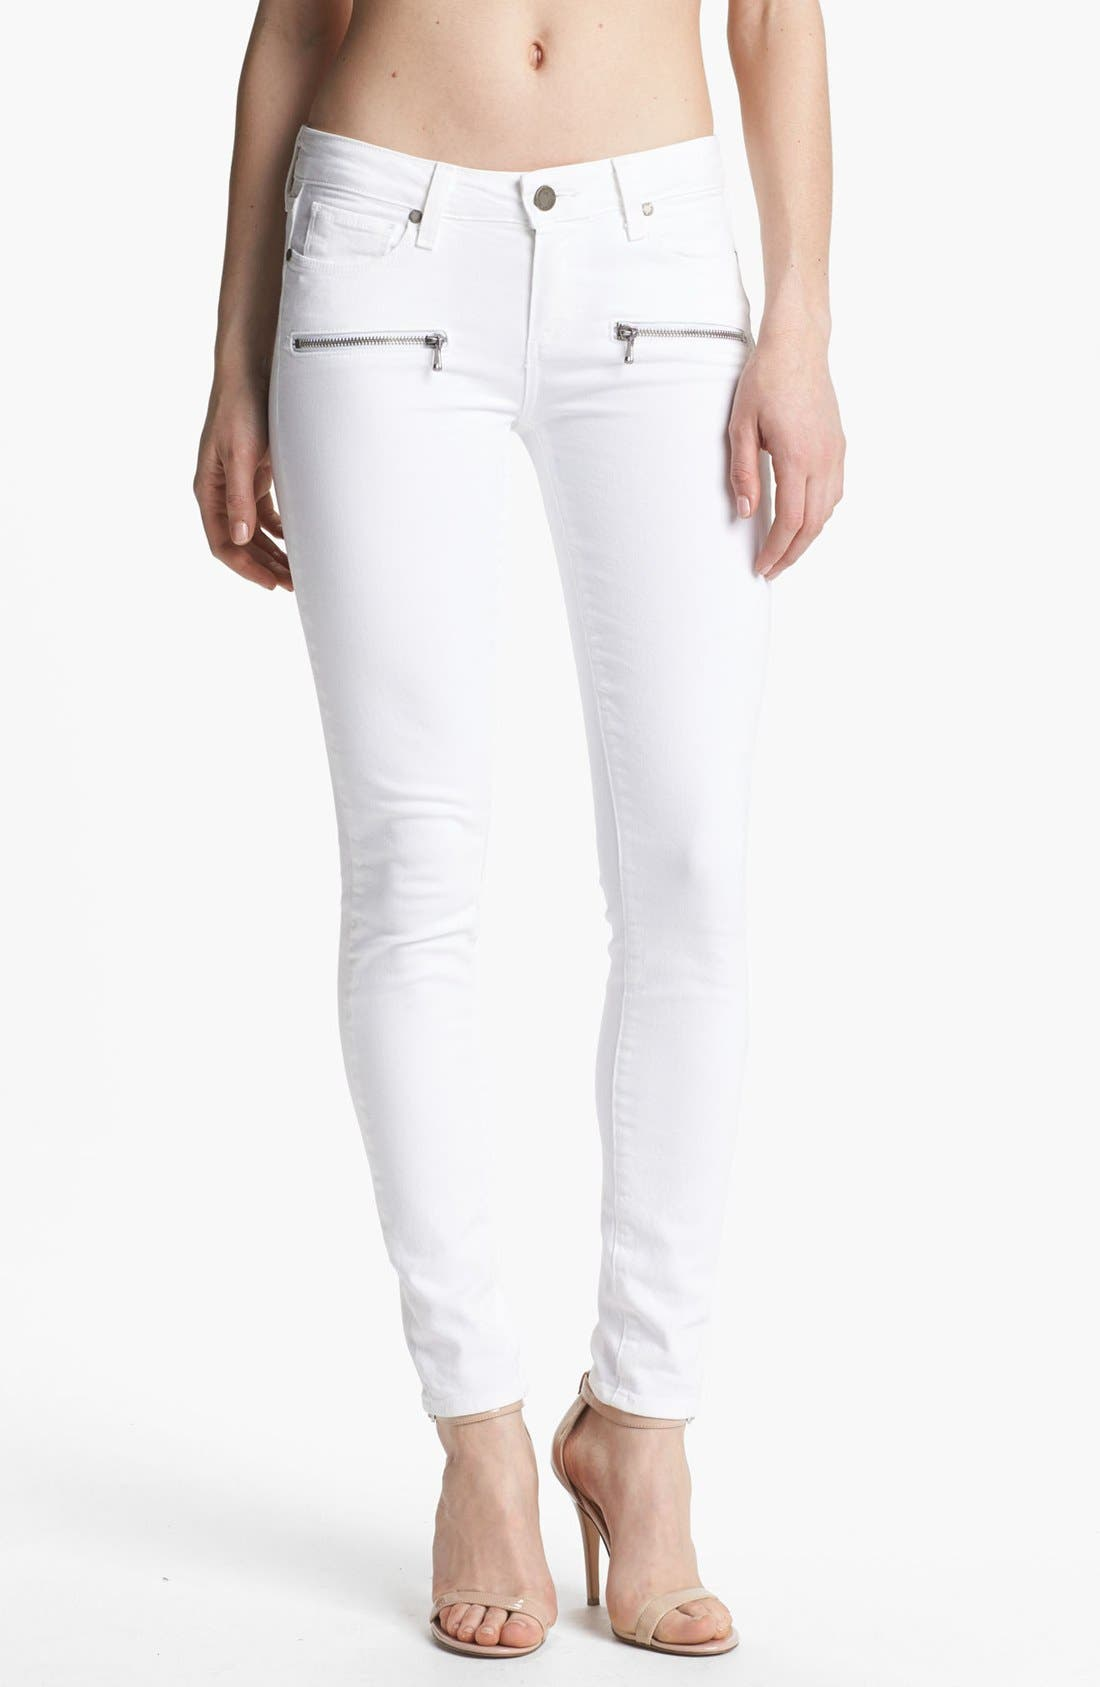 Alternate Image 1 Selected - Paige Denim 'Indio Zip' Ultra Skinny Stretch Jeans (Optic White)